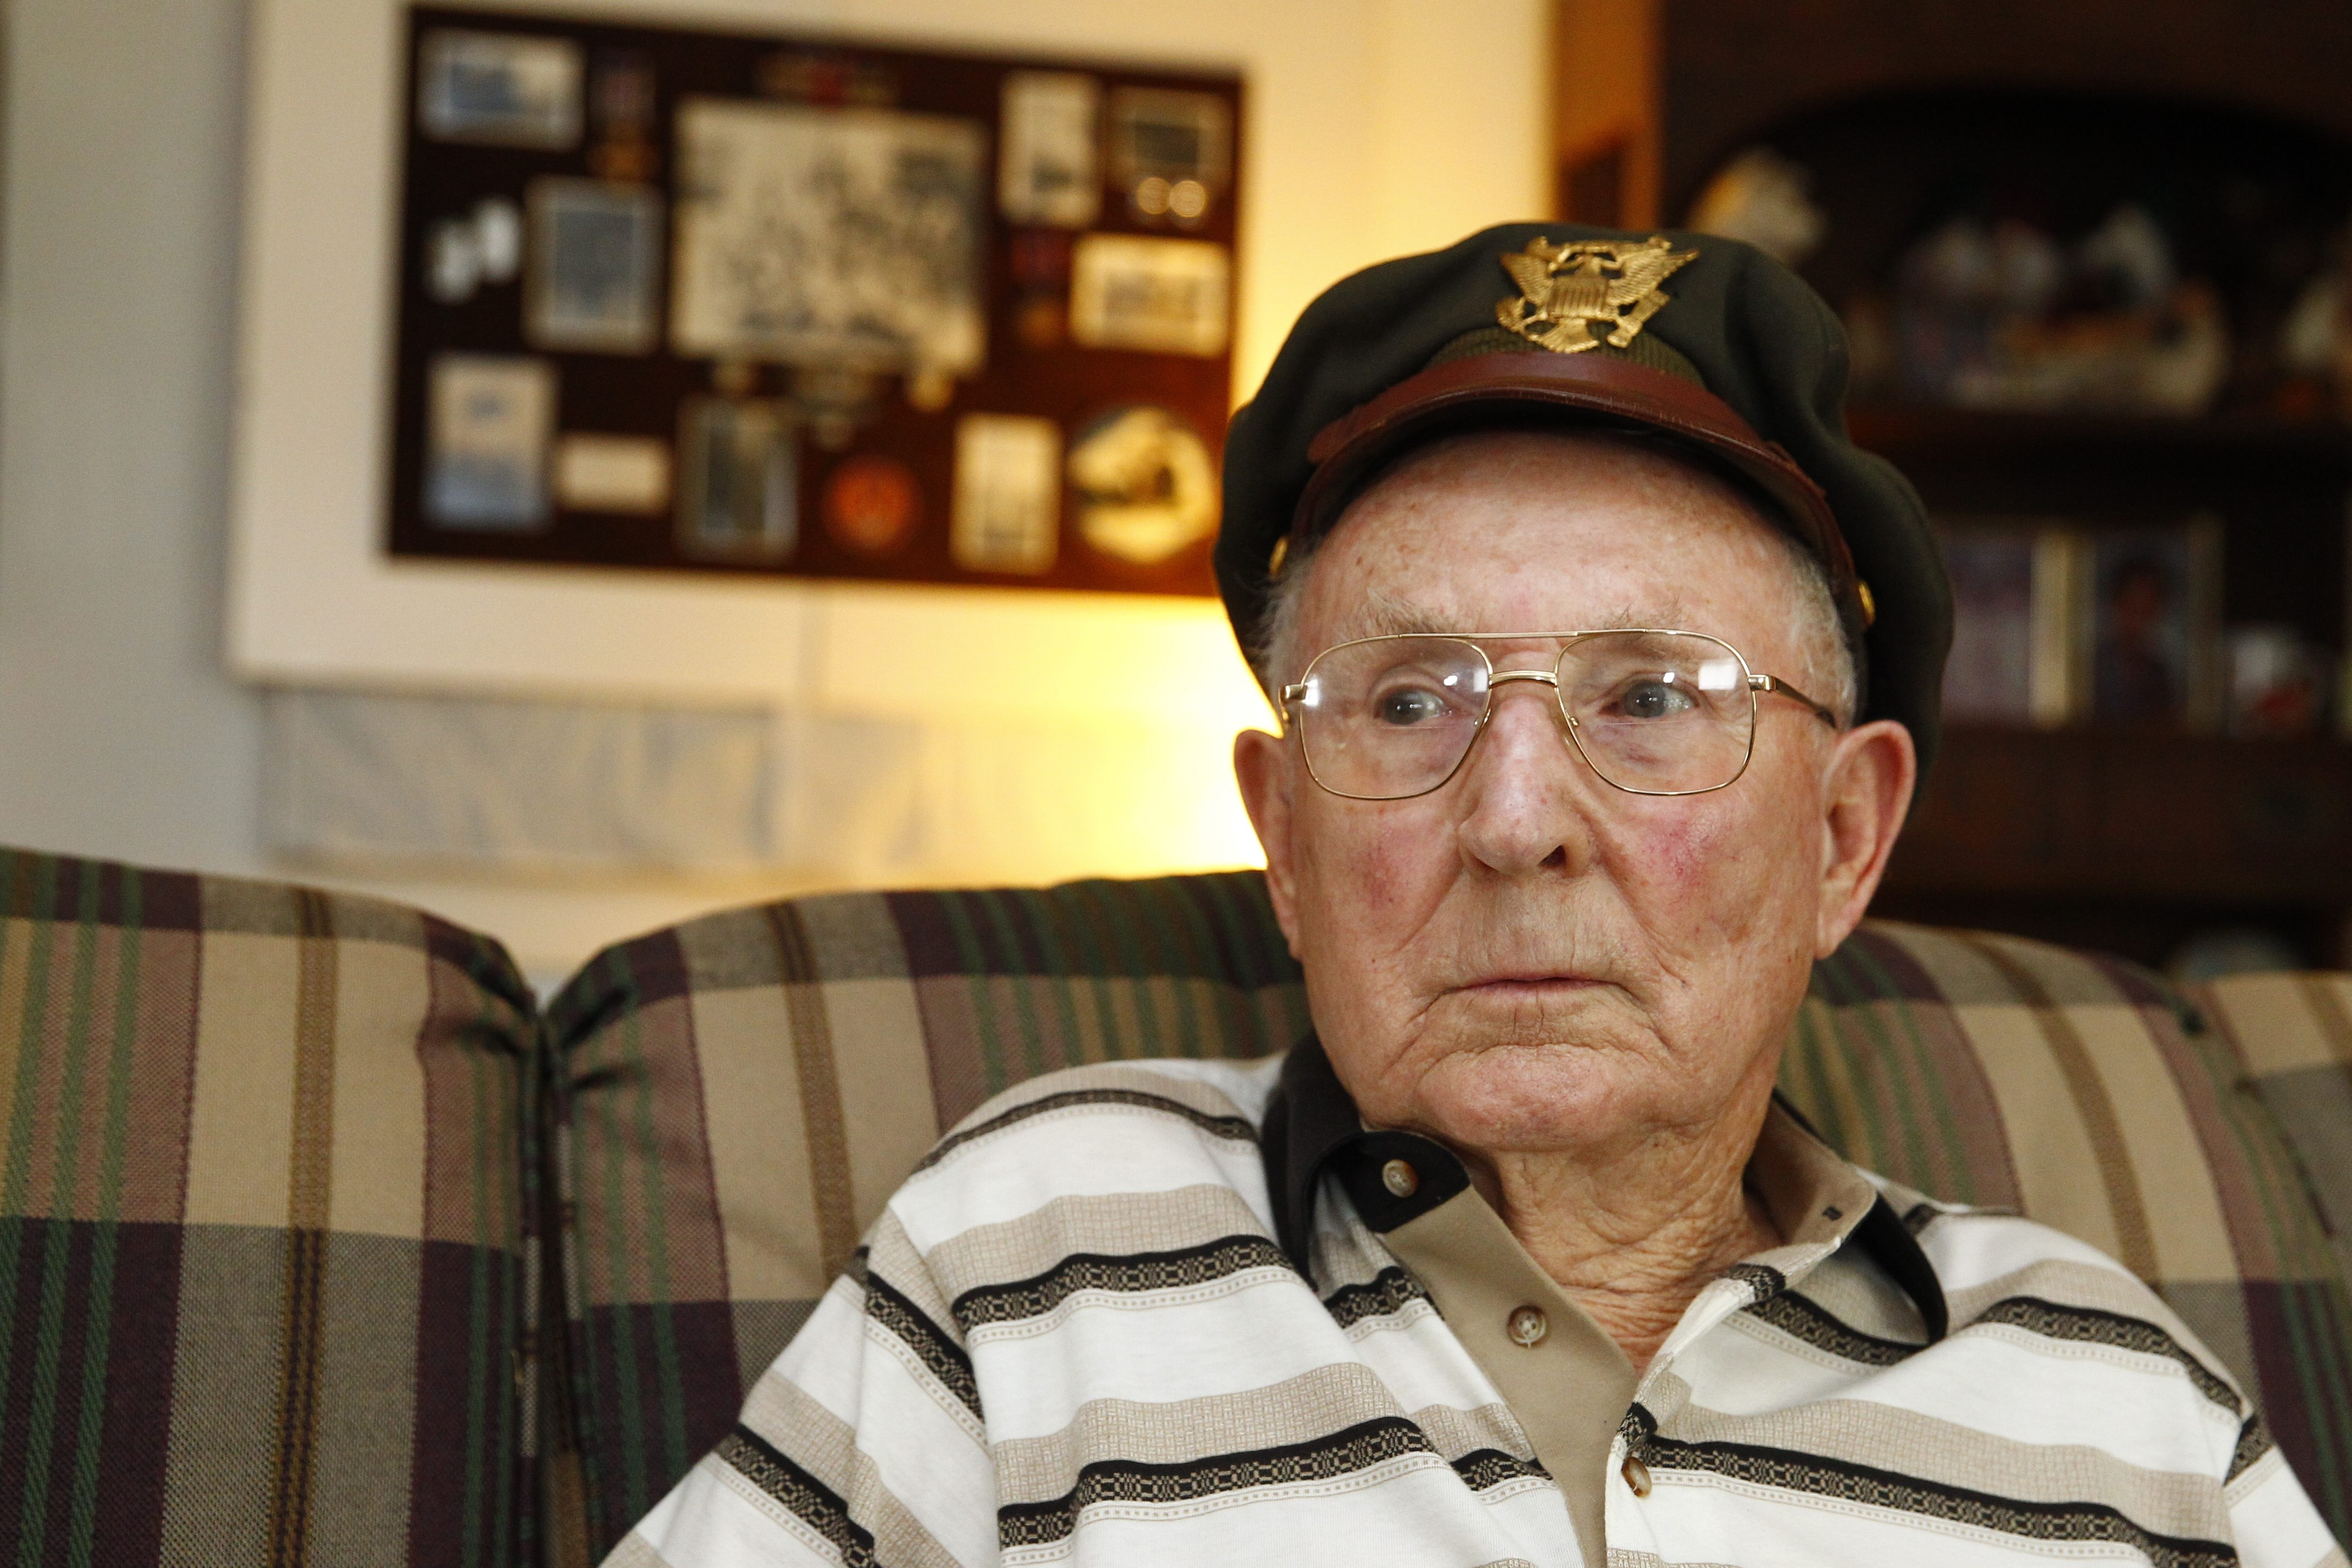 Donald A. Stevens remembers dodging anti-aircraft fire on war's last bombing run at key oil refinery – on his birthday.